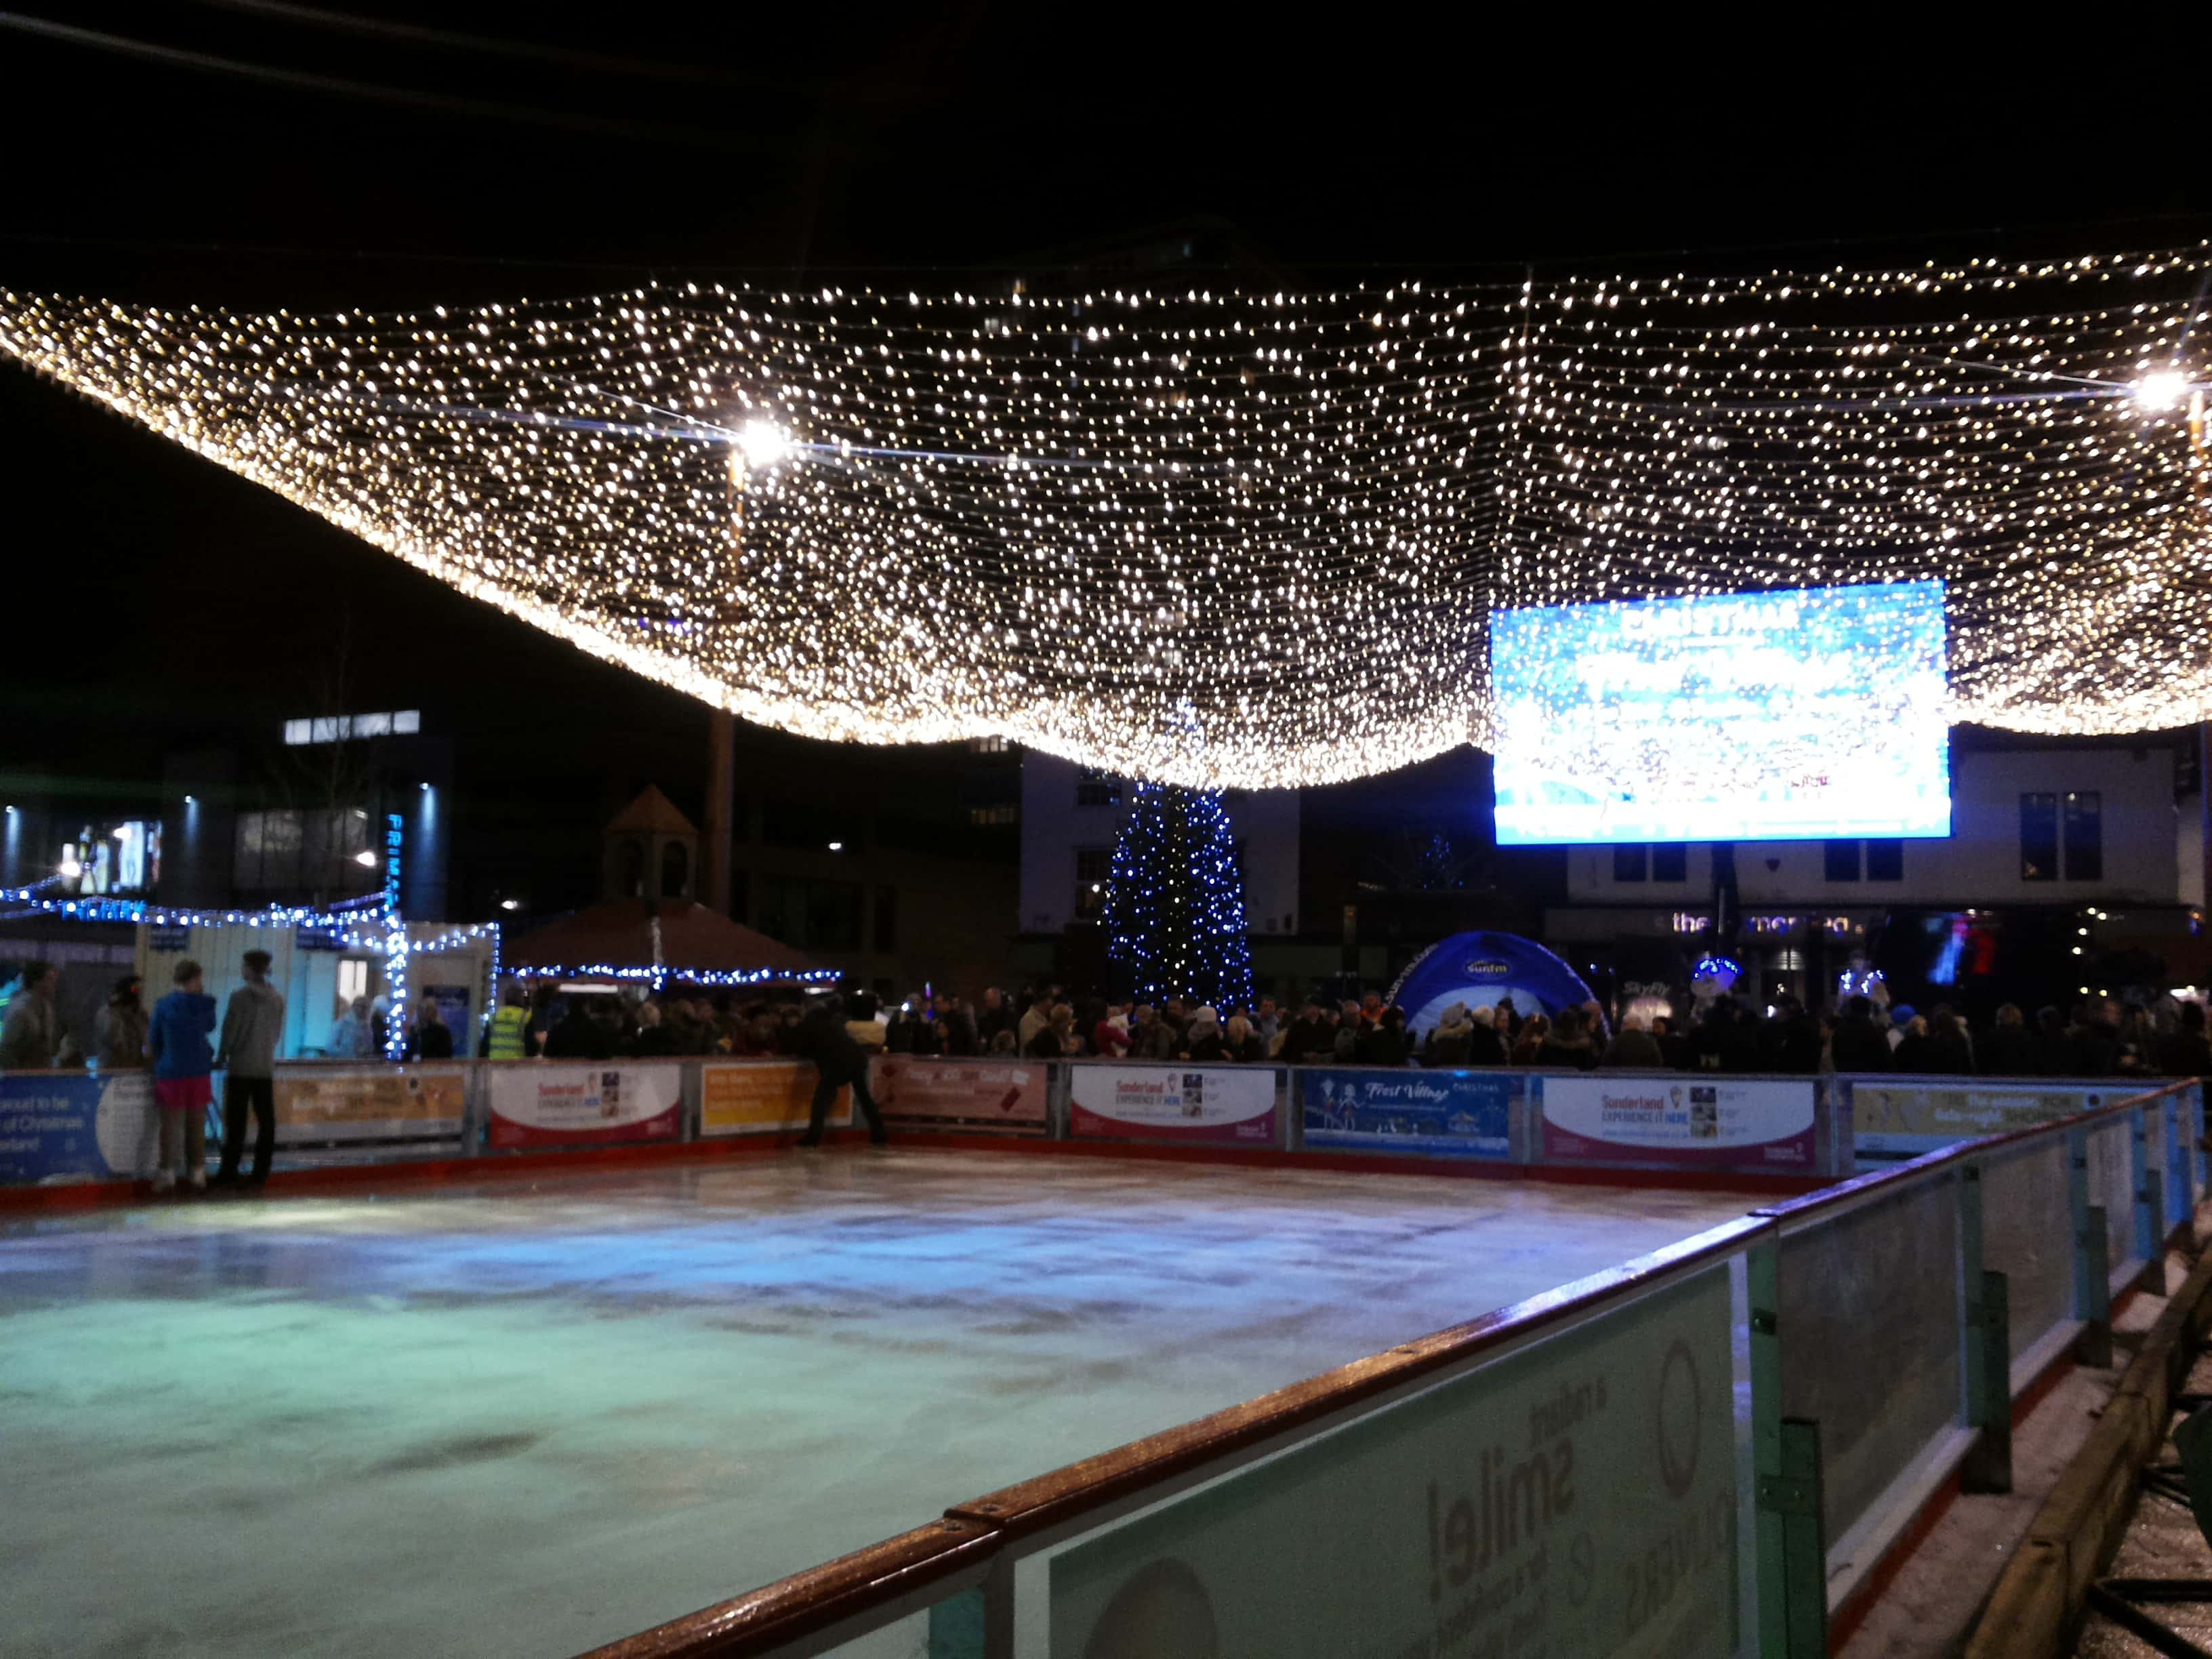 Ice rink, Keel Square Photo by Stela Taneva